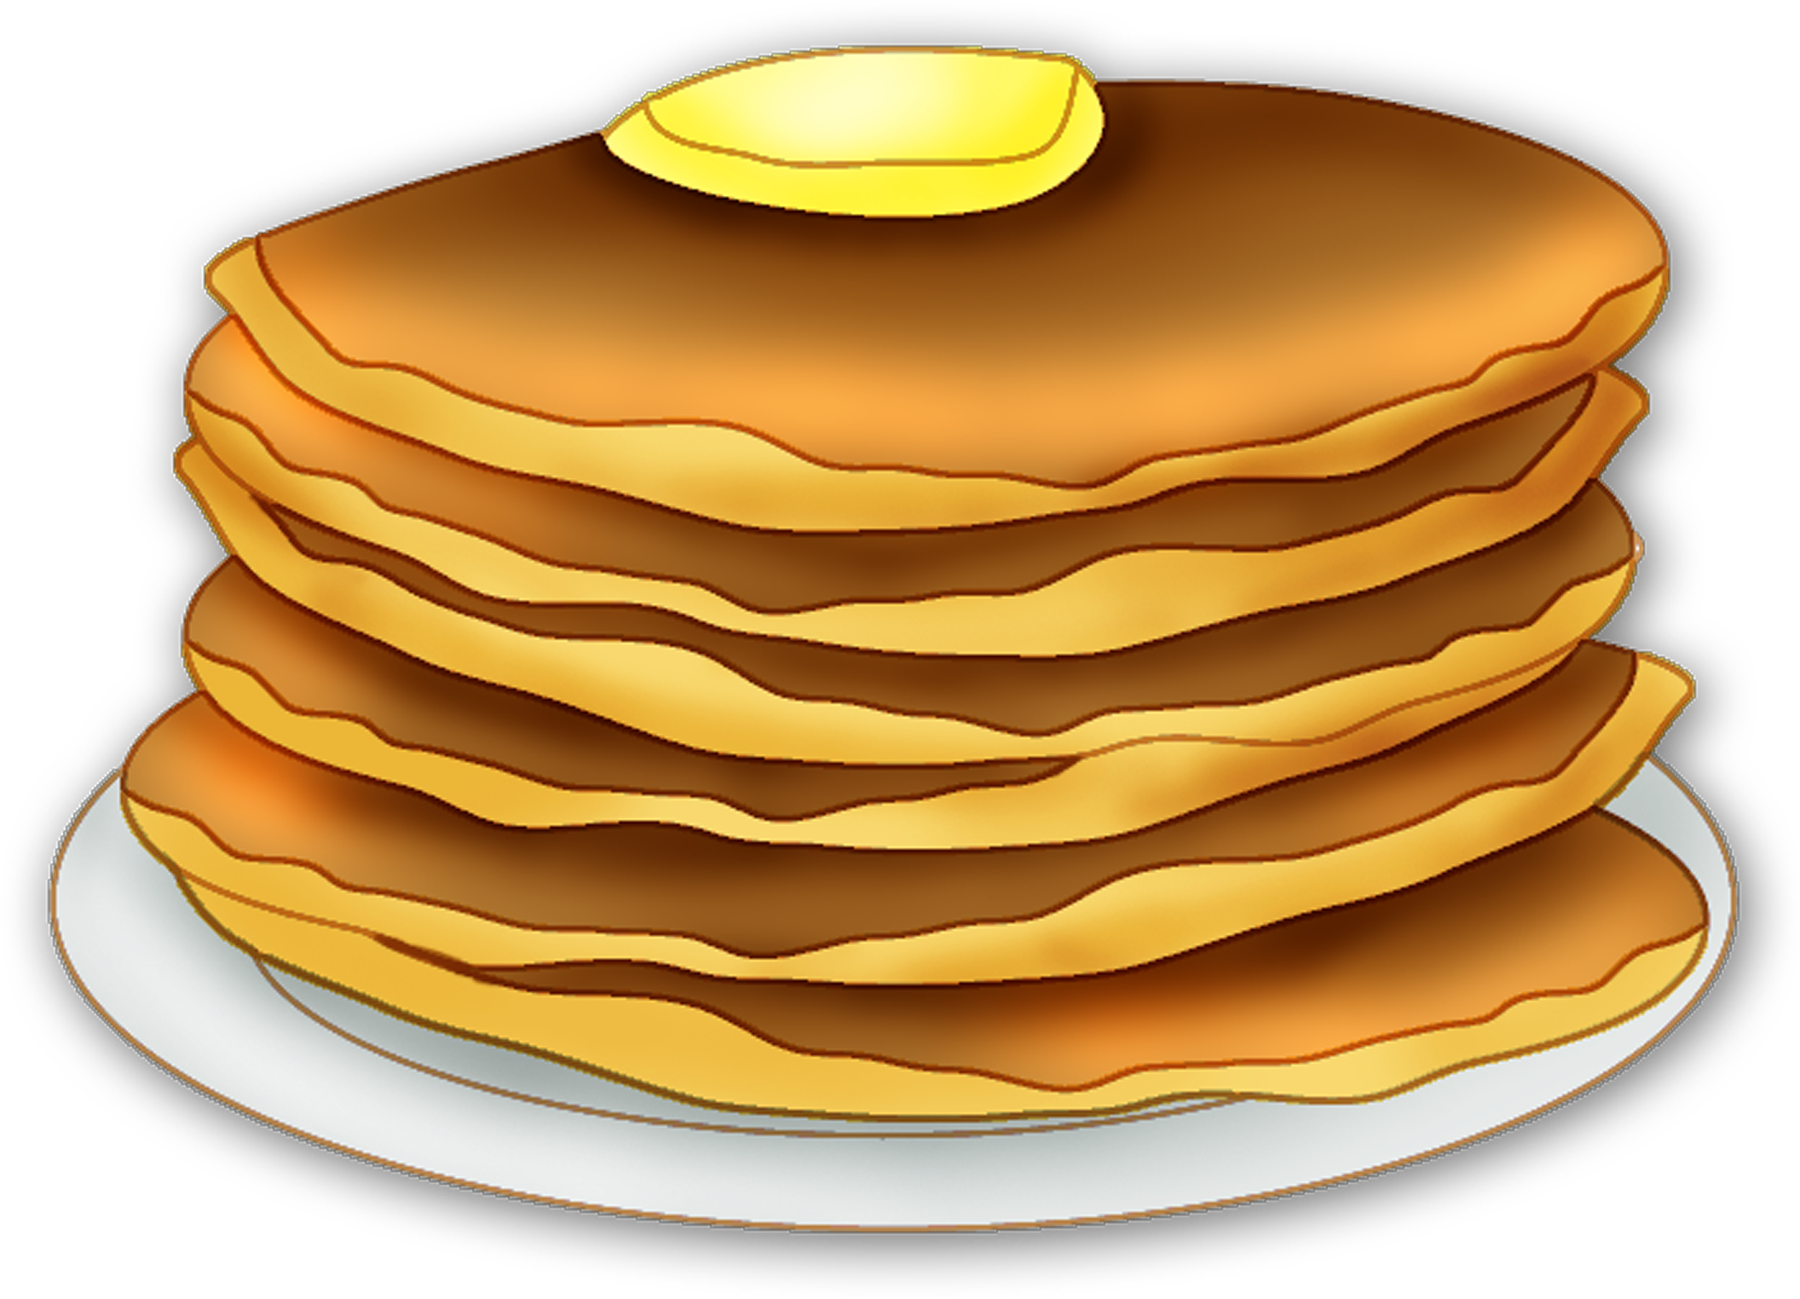 images-pancakes-clipart-page-2